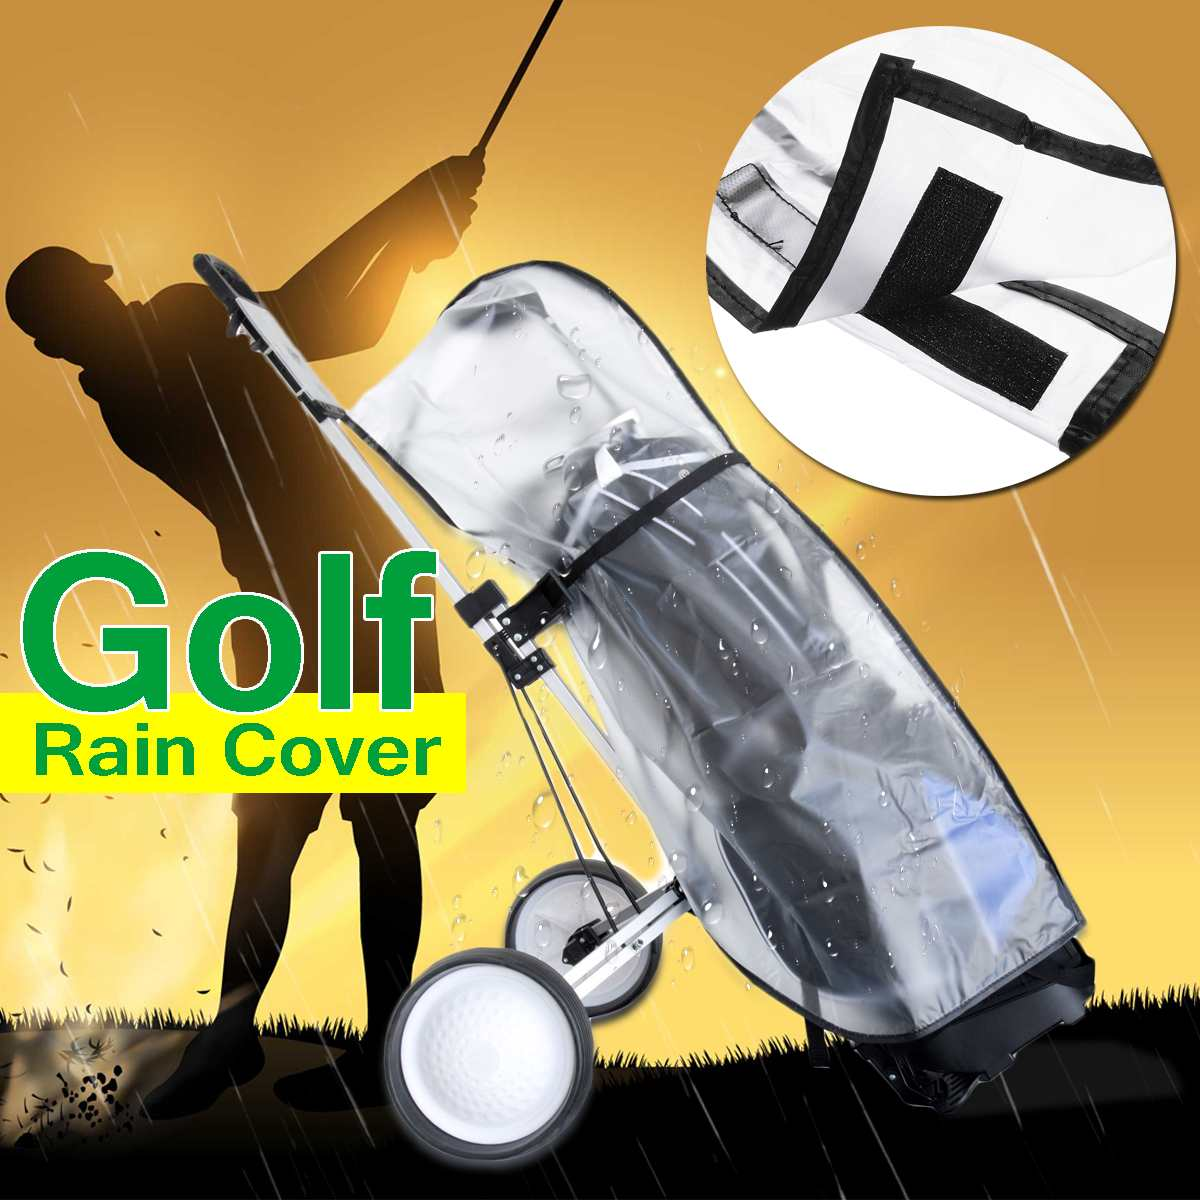 Waterproof Dustproof Golf Rain Cover Shield Outdoor Rod Protector Free Shipping